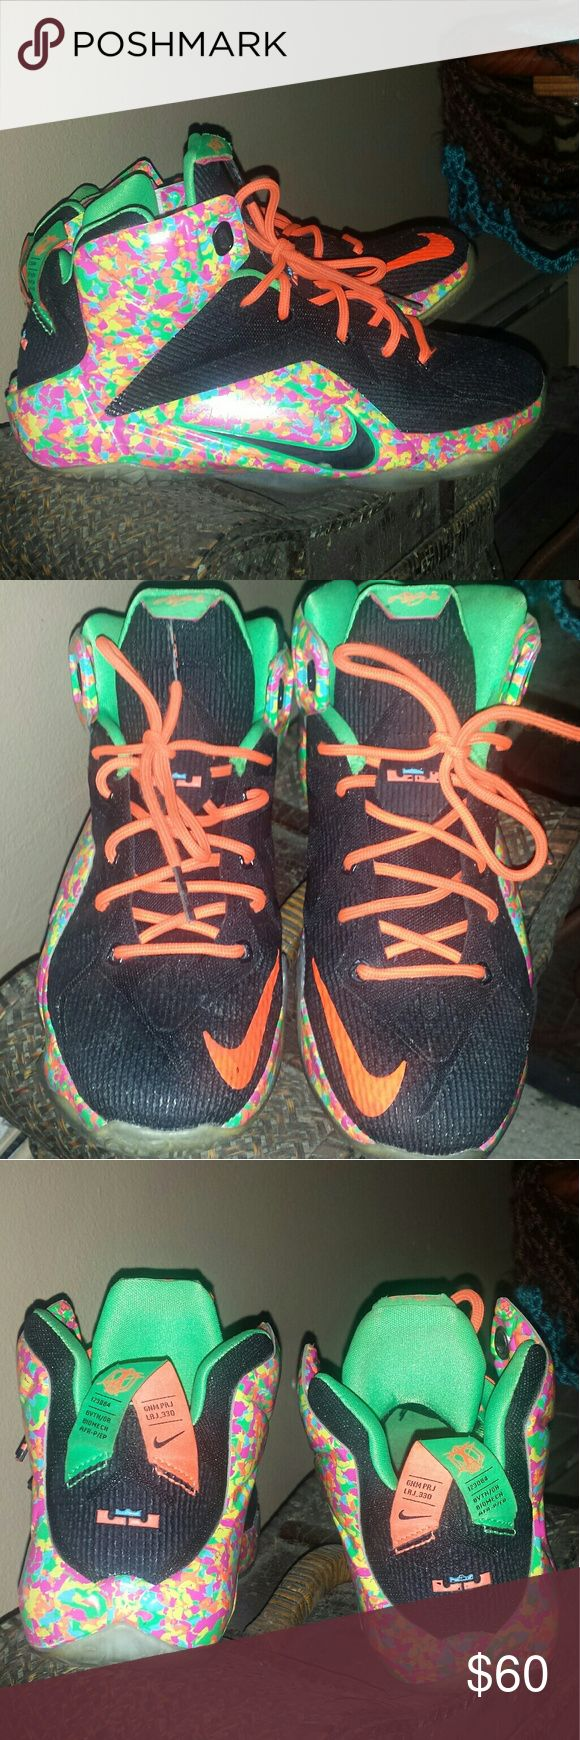 LeBron 12 Fruity pebbles size 6.5y or 8 in women Good condition.  Size 6.5y or about an 8 in women's. Nike lebron 12 fruity pebble. No box, sorry. Nike Shoes Sneakers